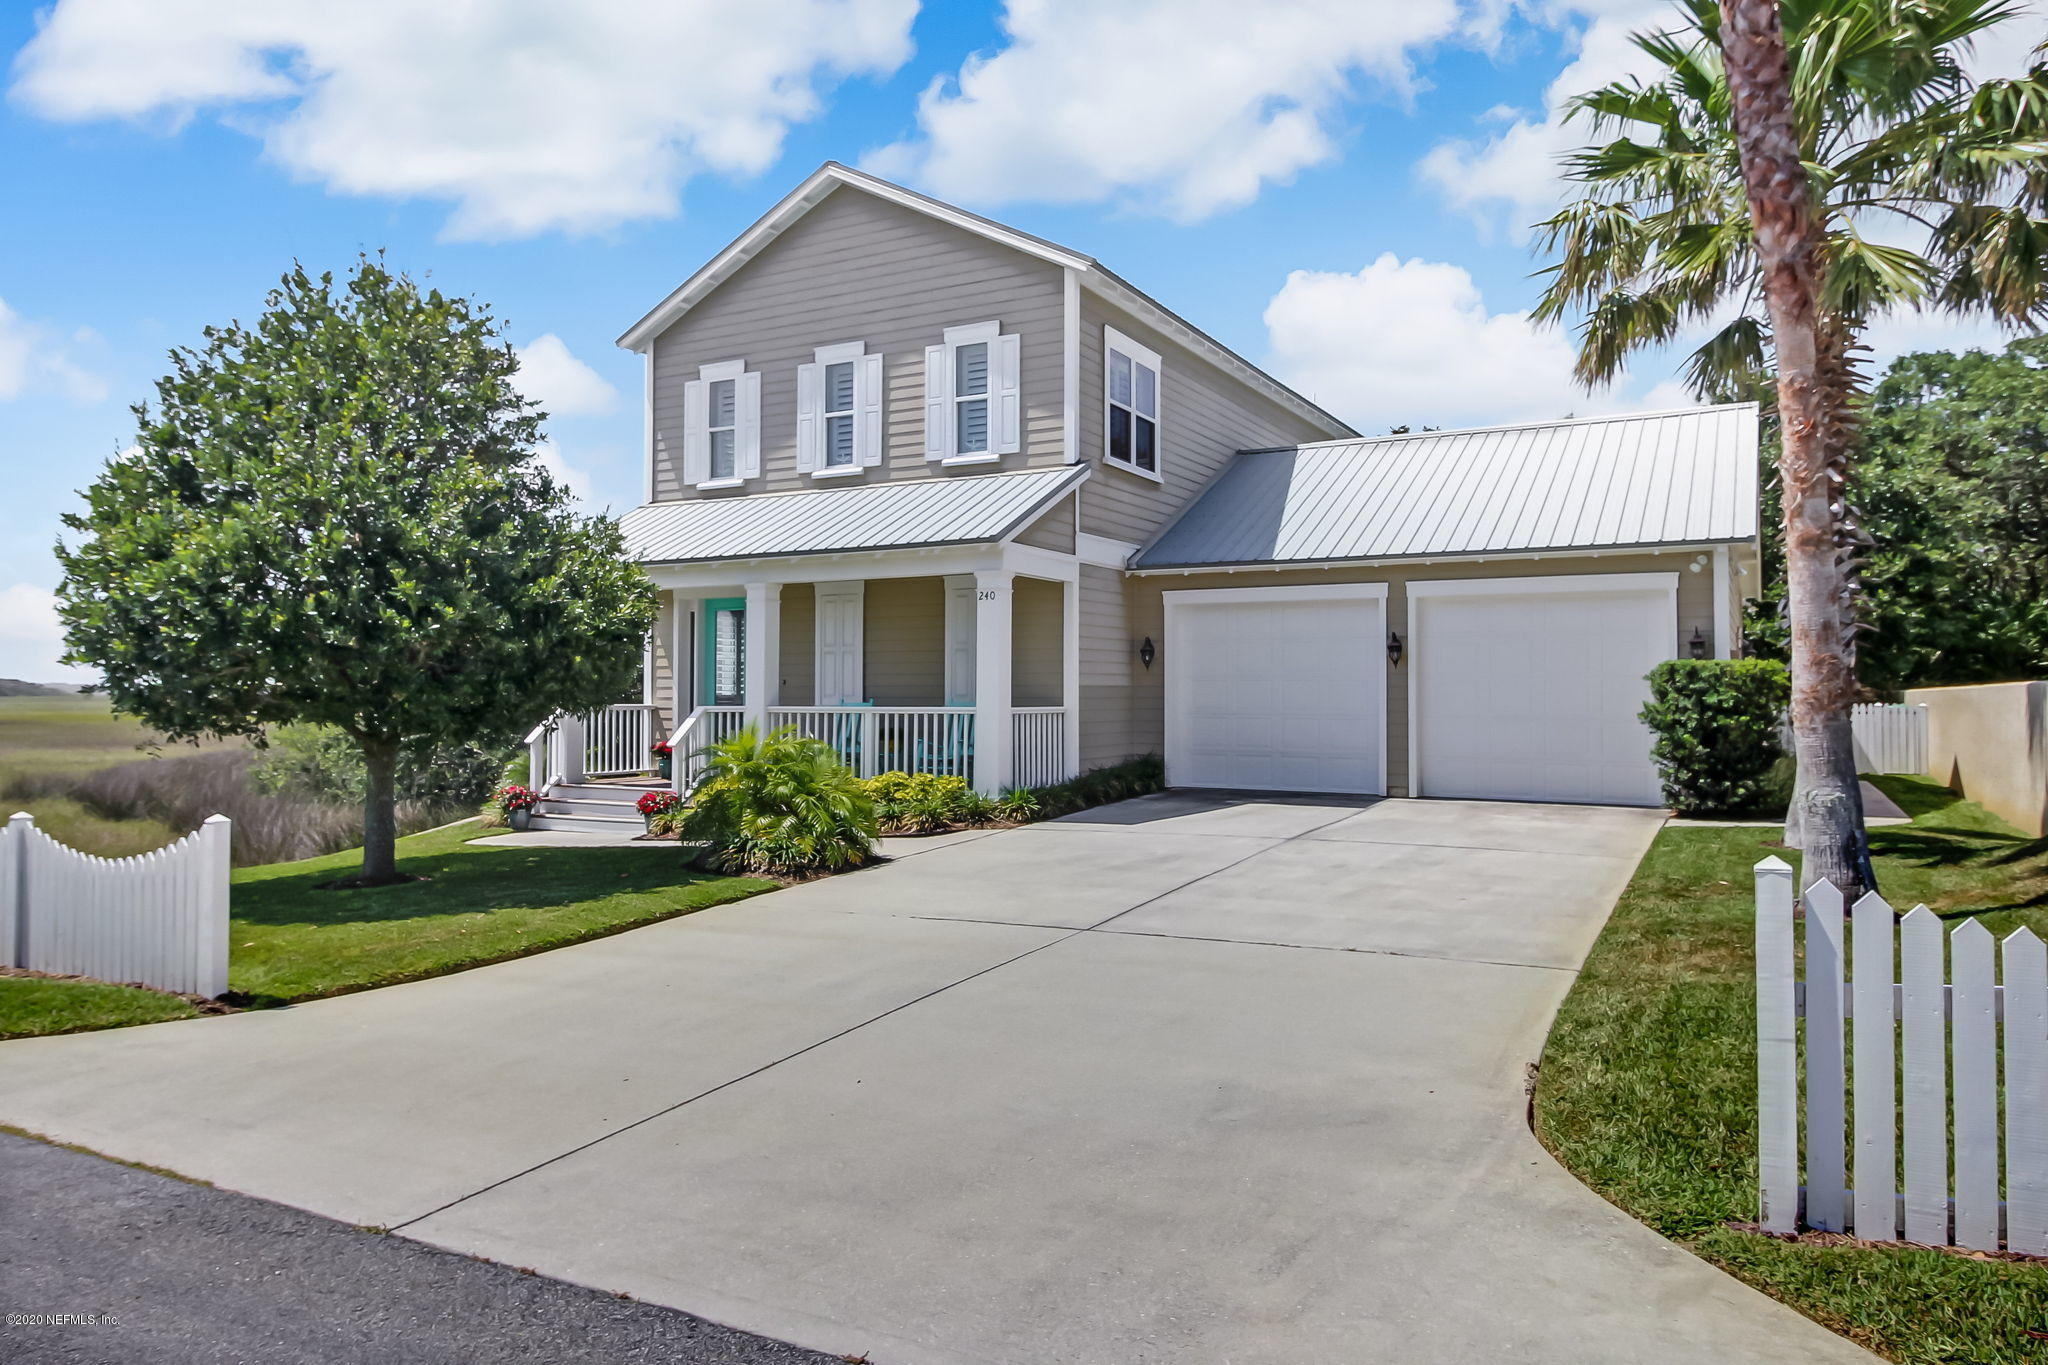 240 GULL, PONTE VEDRA BEACH, FLORIDA 32082, 3 Bedrooms Bedrooms, ,3 BathroomsBathrooms,Residential,For sale,GULL,1054985